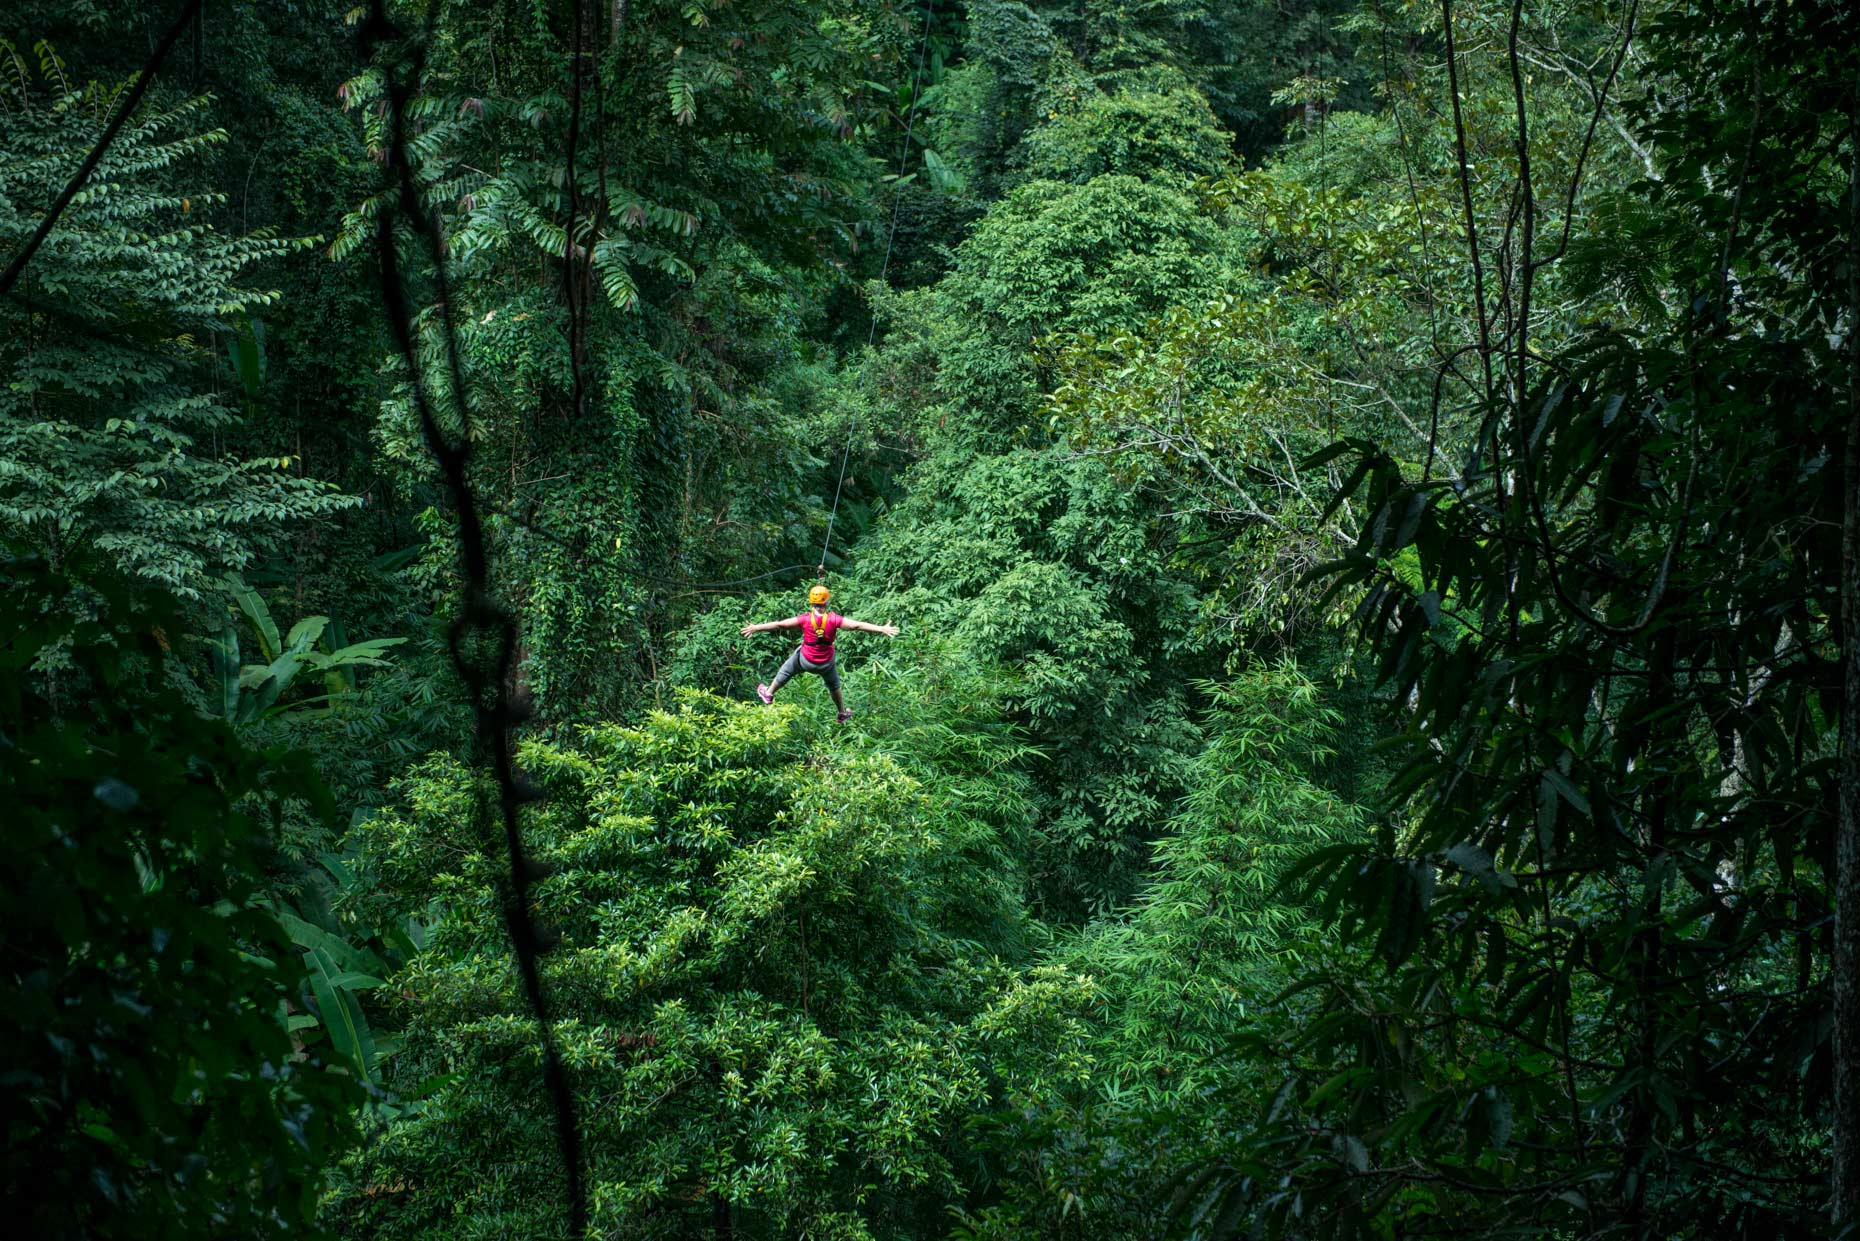 Zip Lining in the Forest with flying gibbon | Travel Assignment in Chiangmai, Thailand | Geo Germany Magazine | Stefen Chow